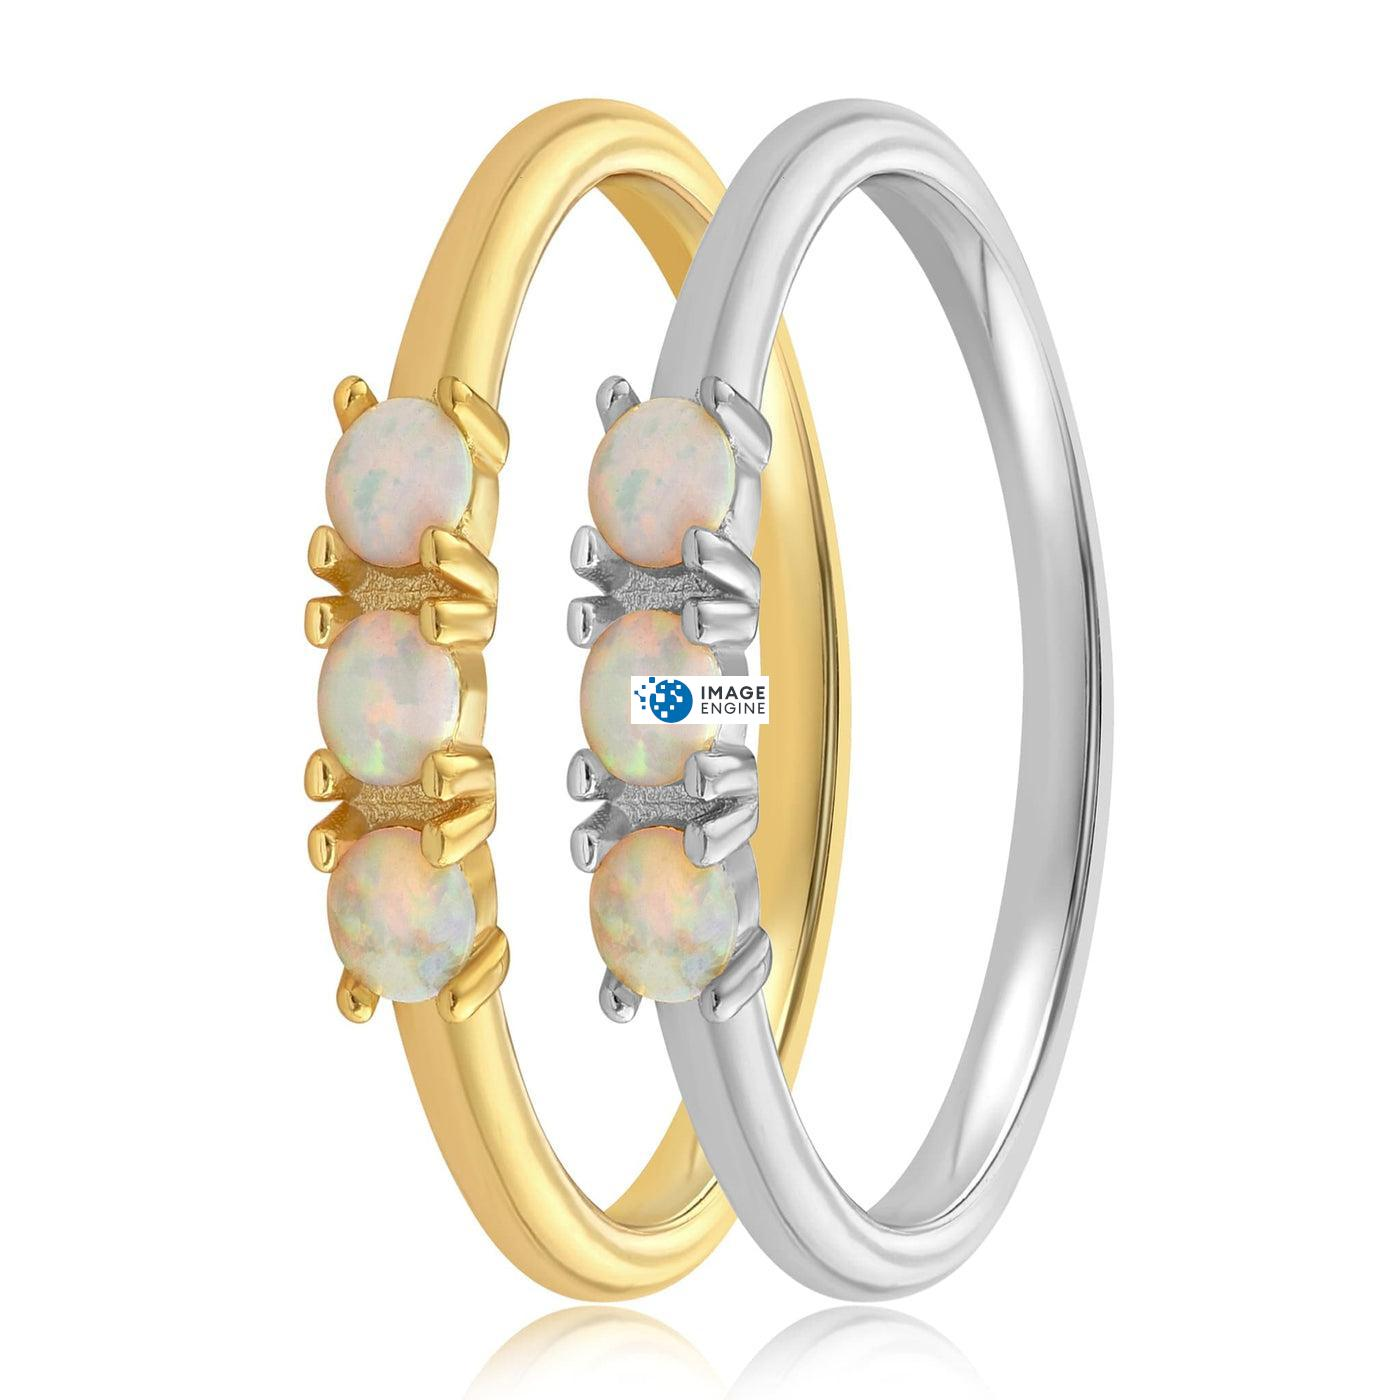 Simple Dots White Fire Opal Ring - Side by Side - 18K Yellow Gold and 925 Sterling Silver